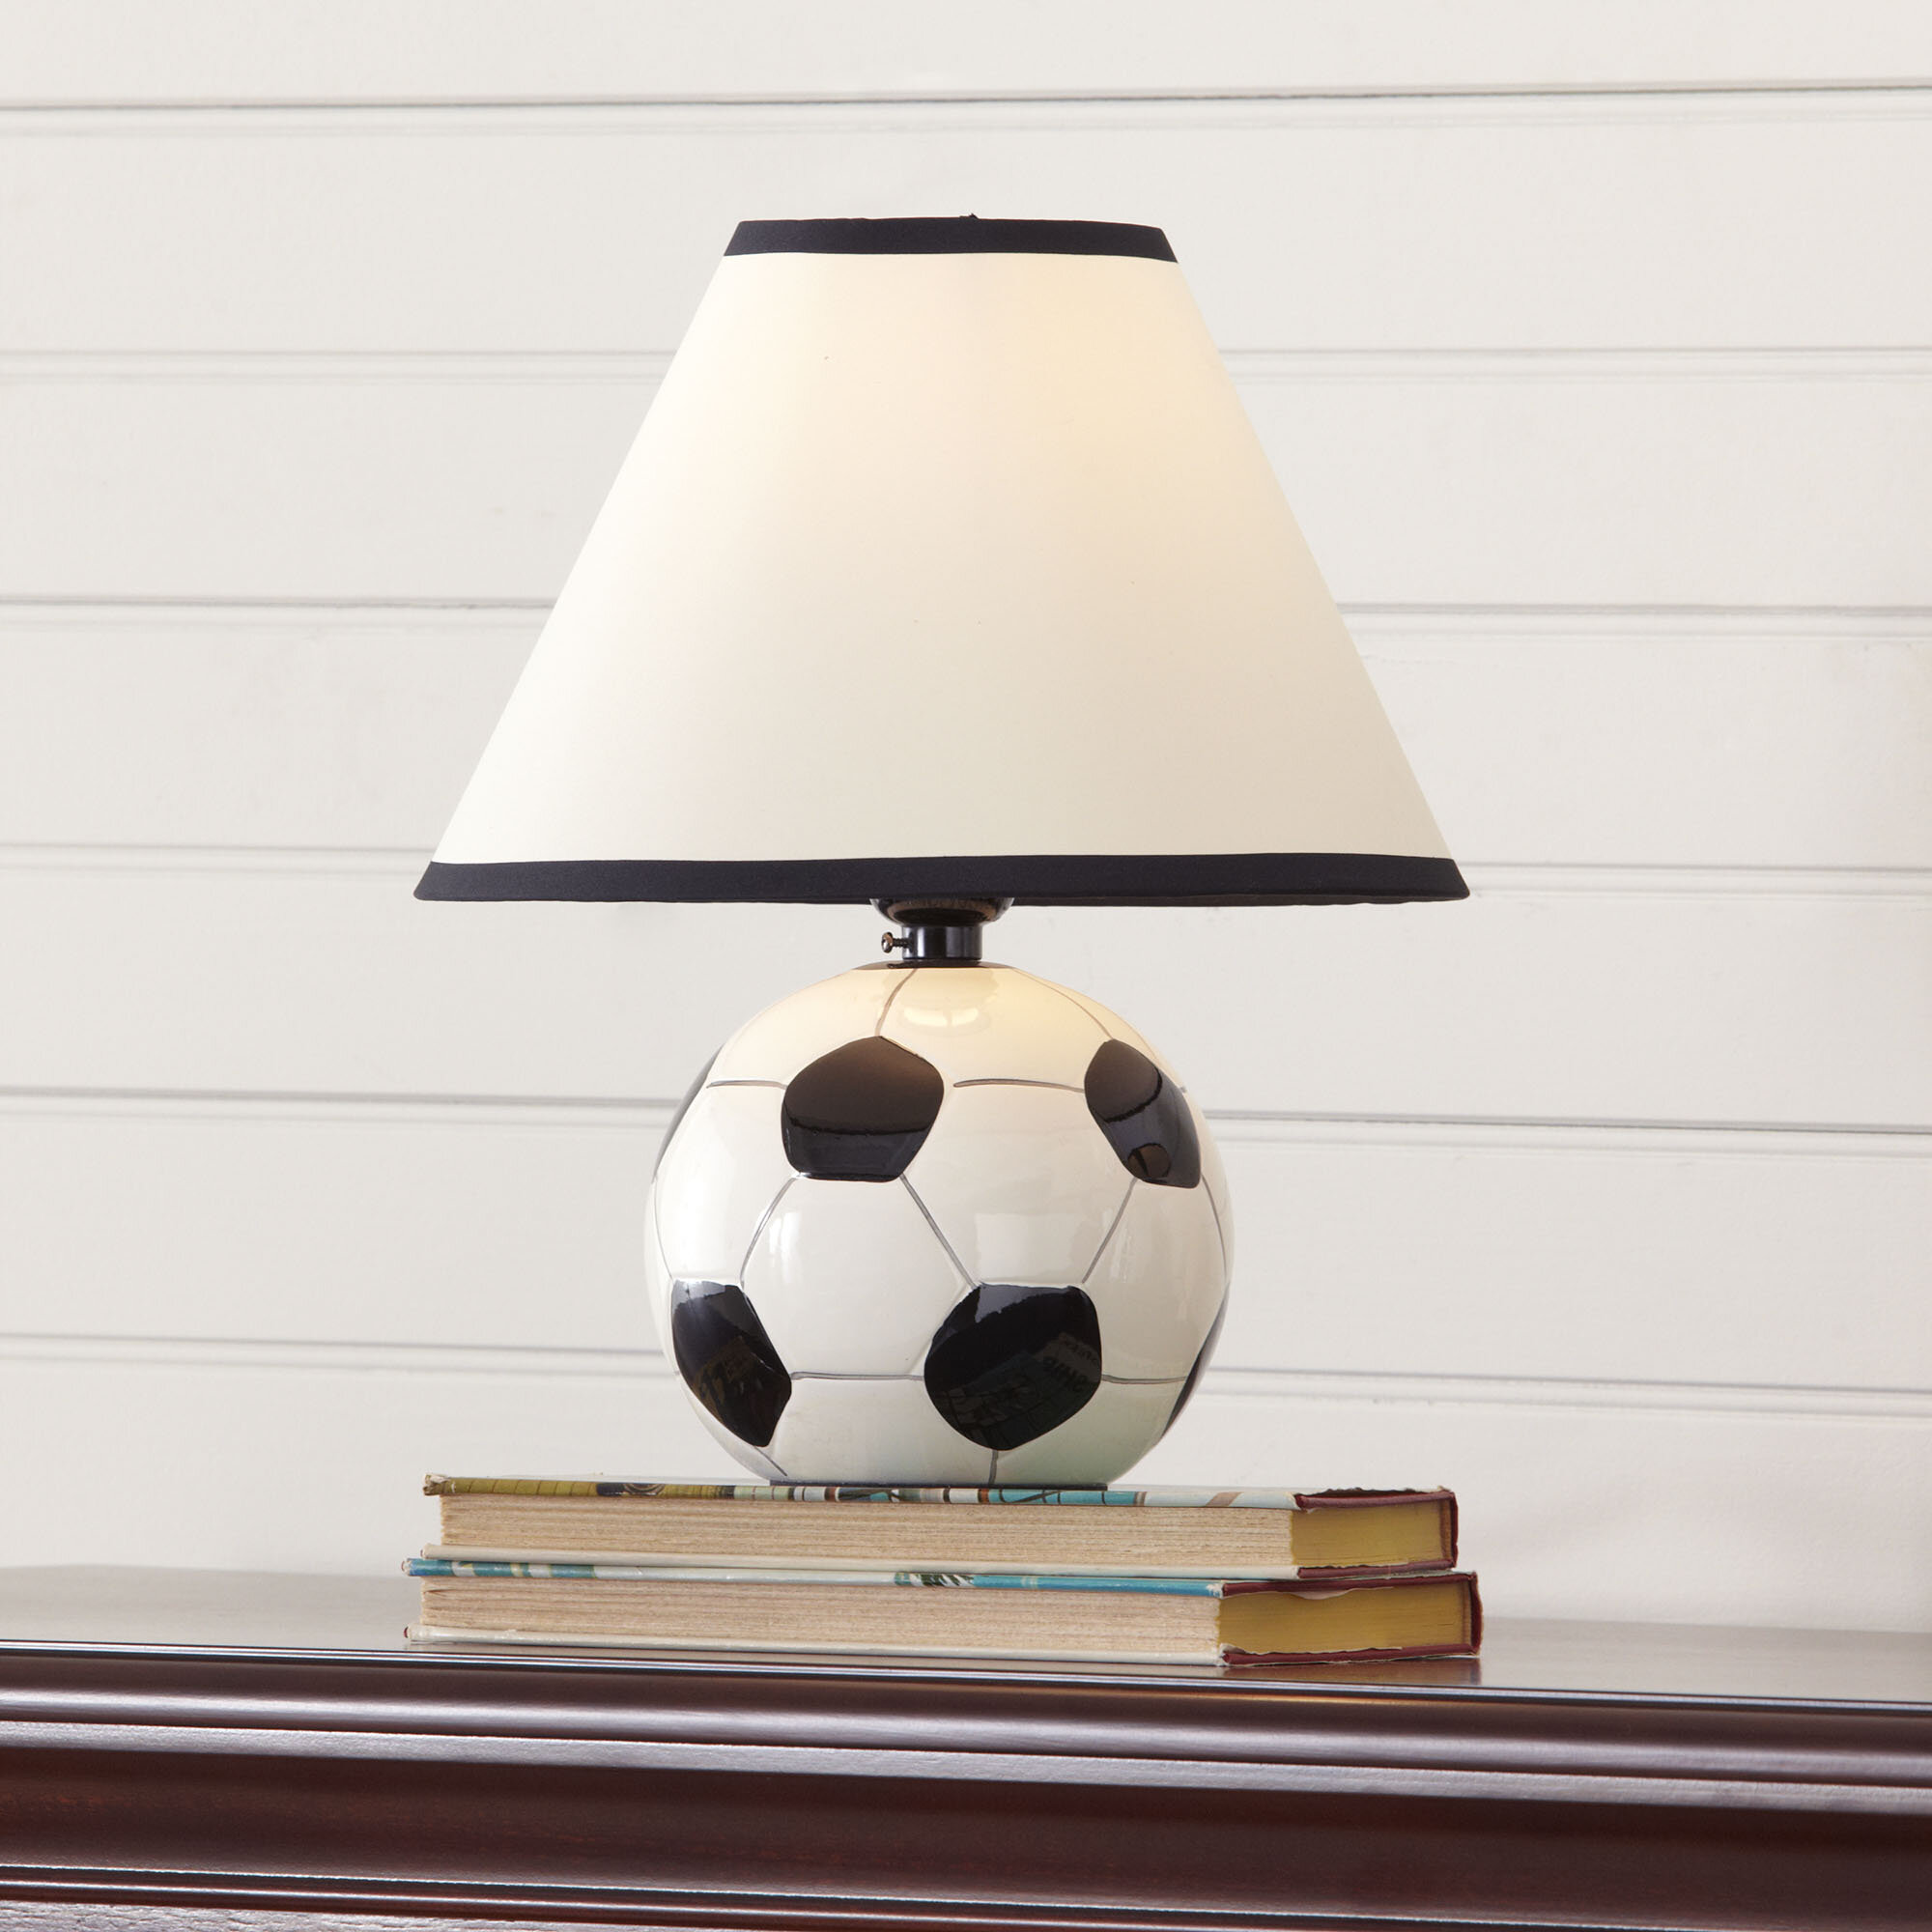 walmart lamp natures design with ideas slip fitter house furniture and fiber spider buy shade uno shades burlap